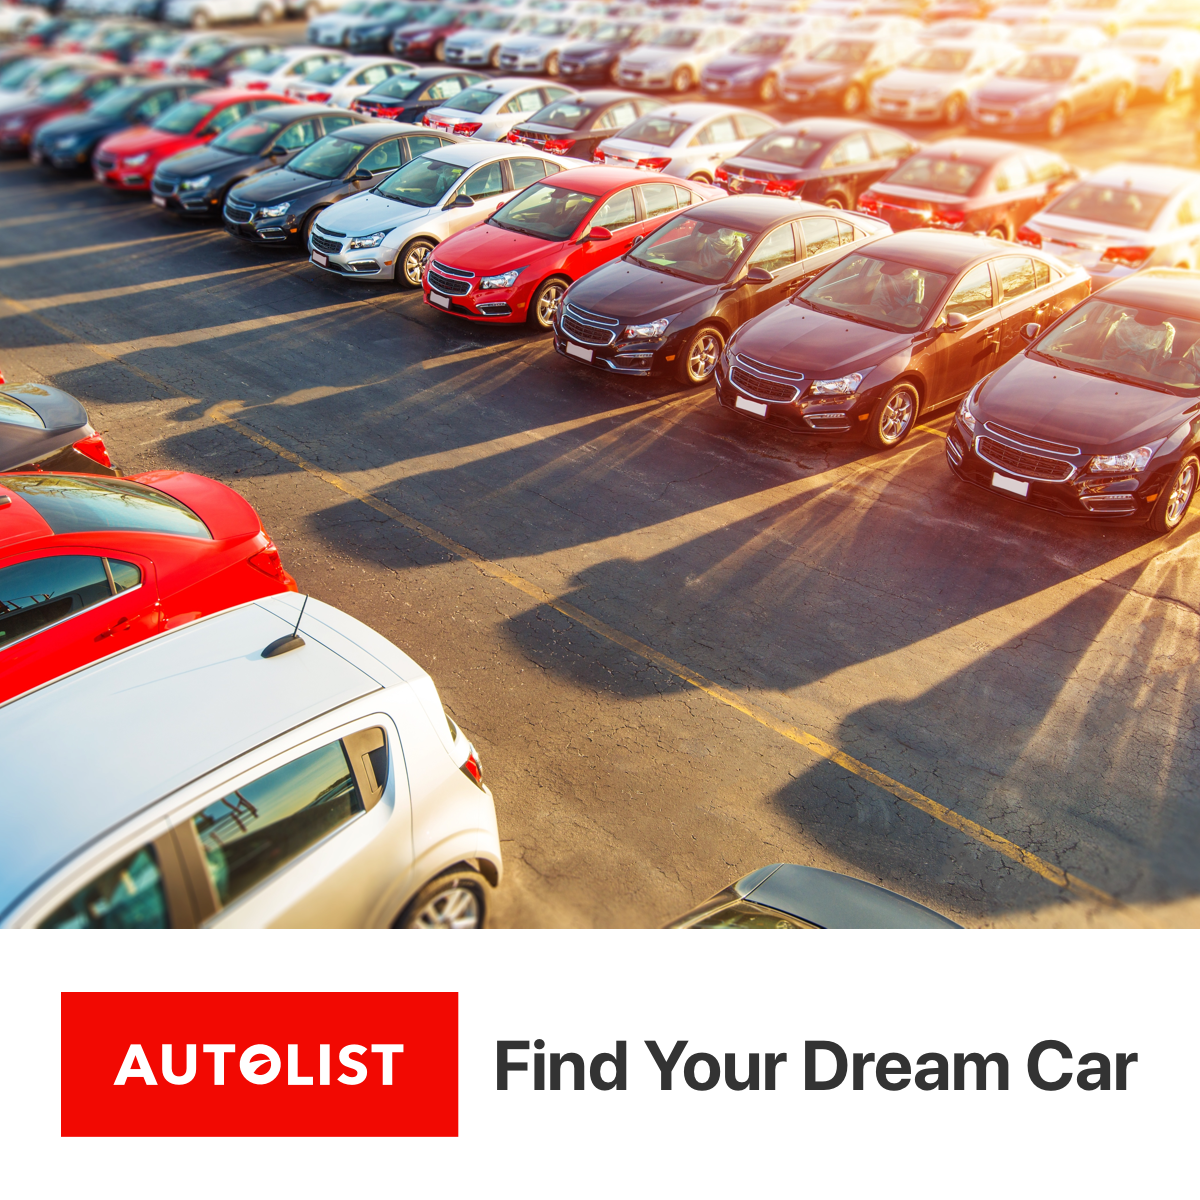 Cheap Car Lots >> Autolist Search New And Used Cars For Sale Compare Prices And Reviews